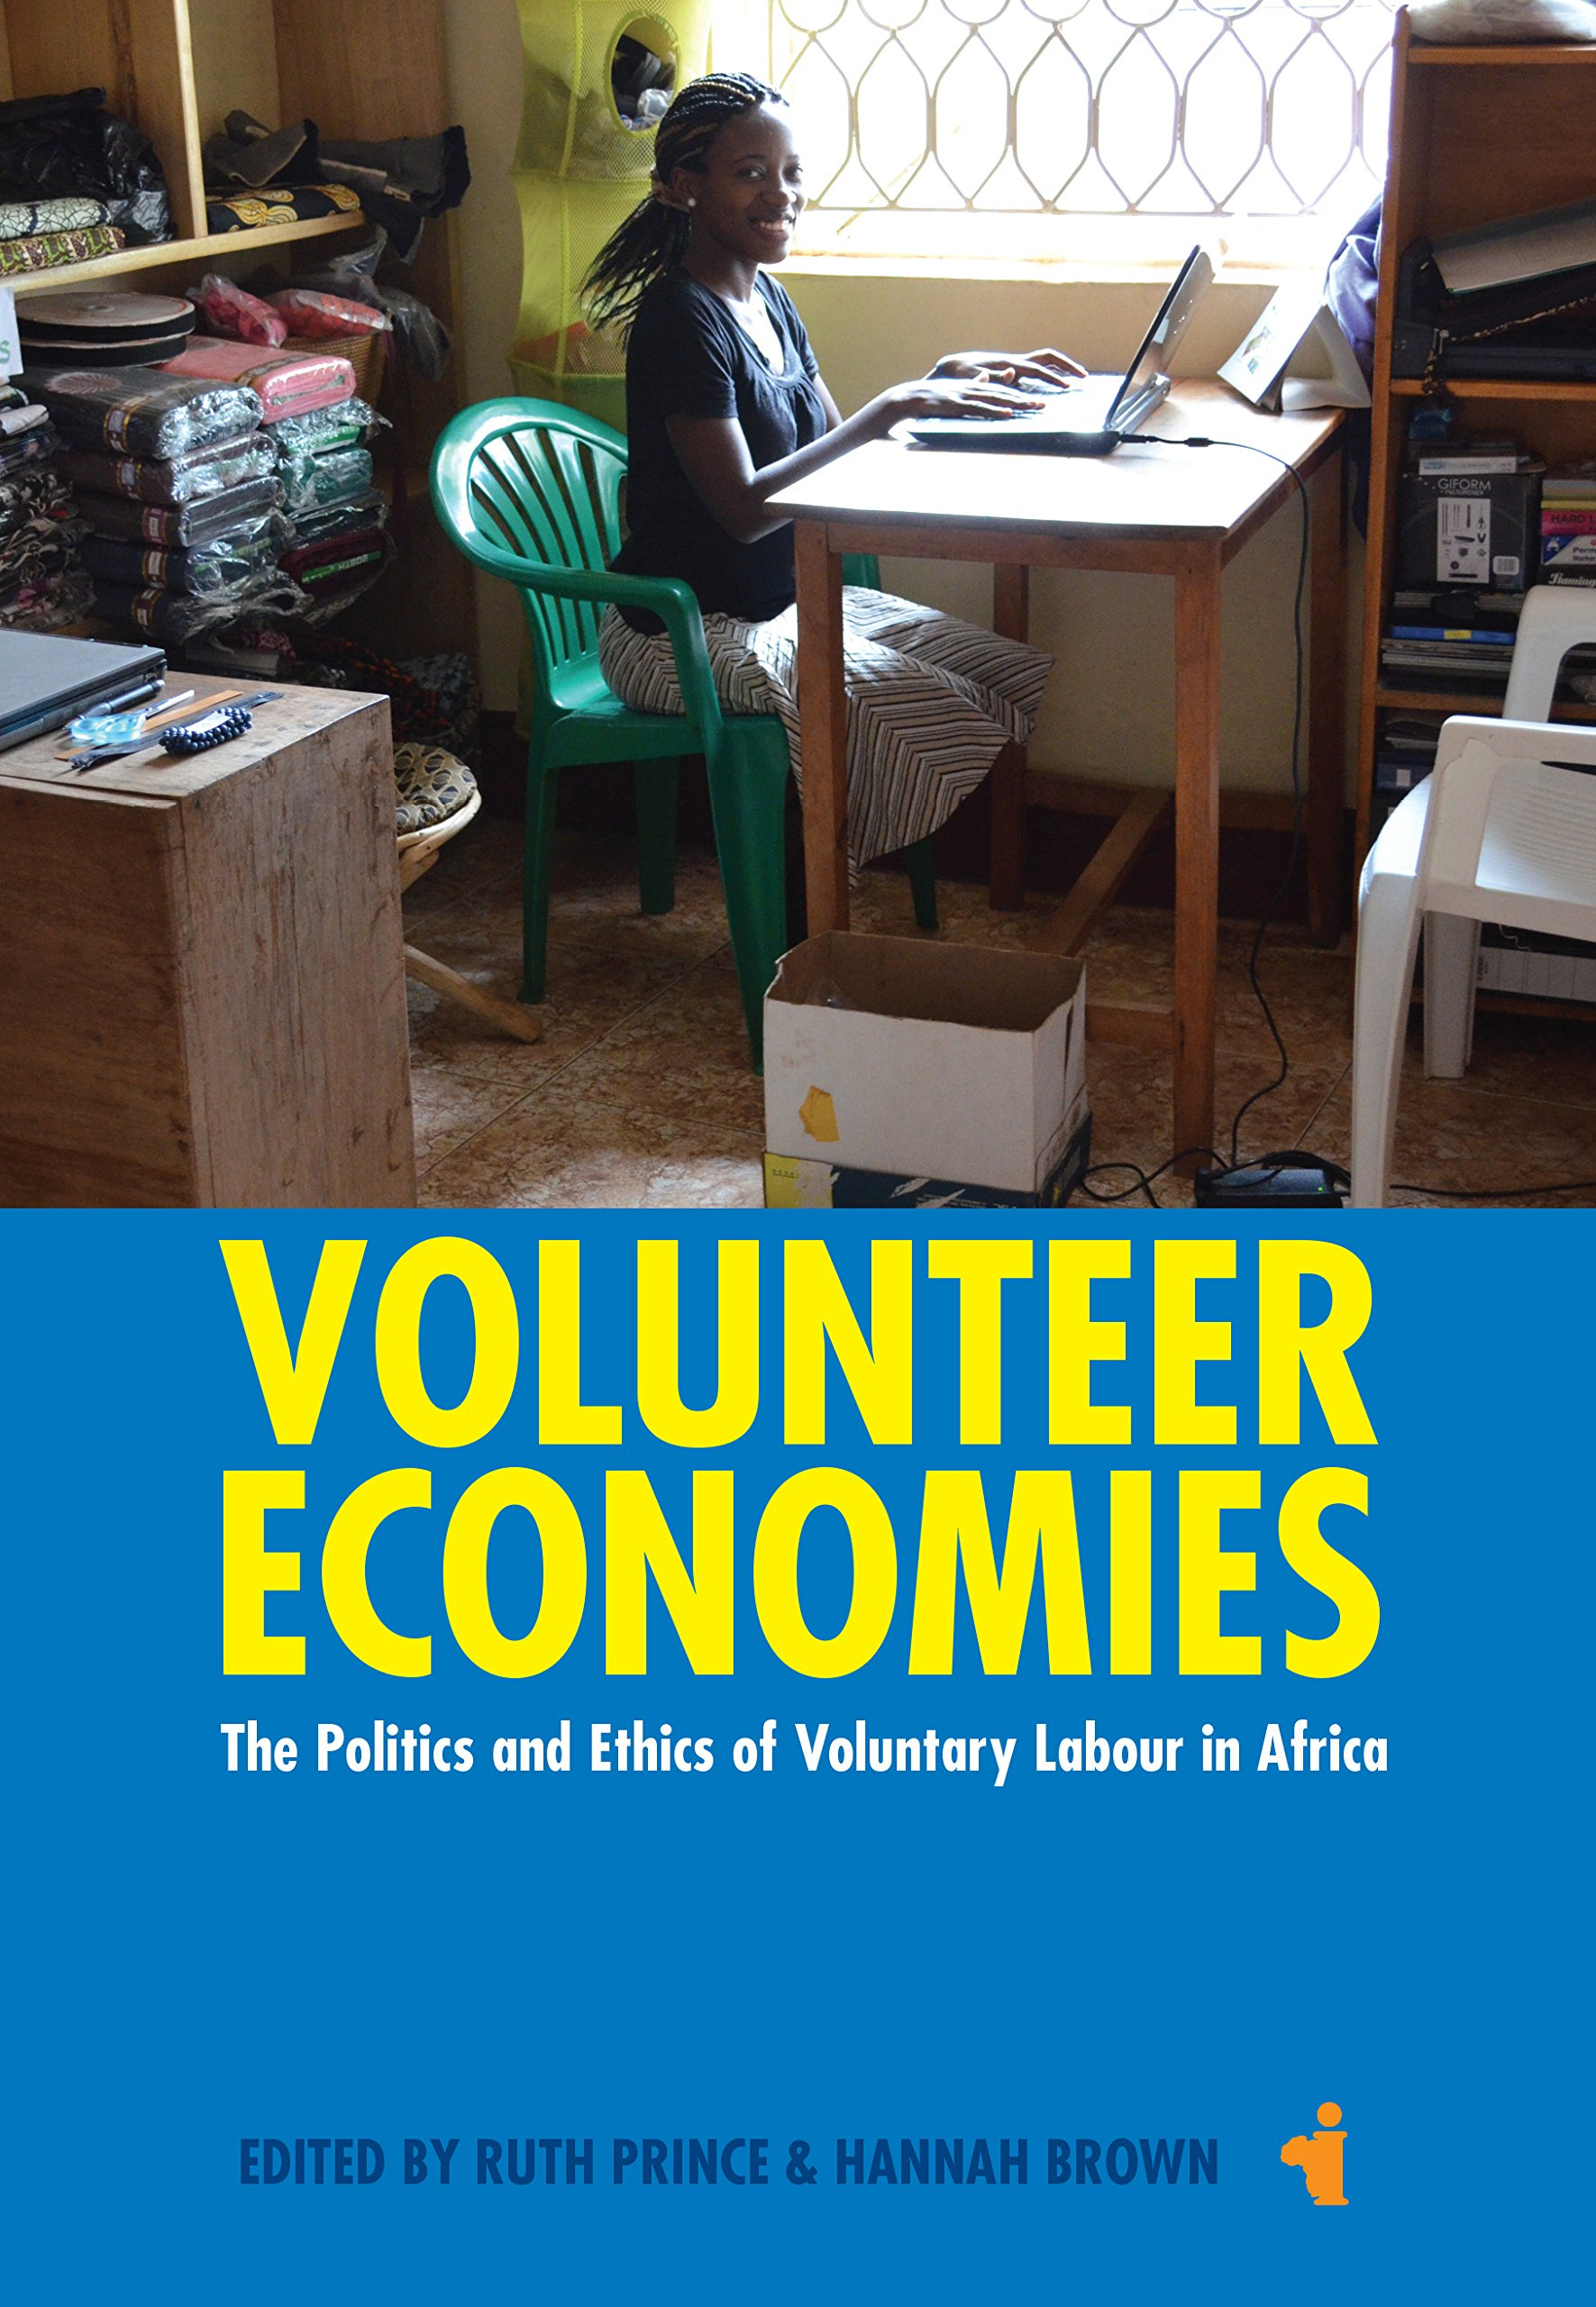 Volunteer Economies: The Politics and Ethics of Voluntary Labour in Africa (African Issues)